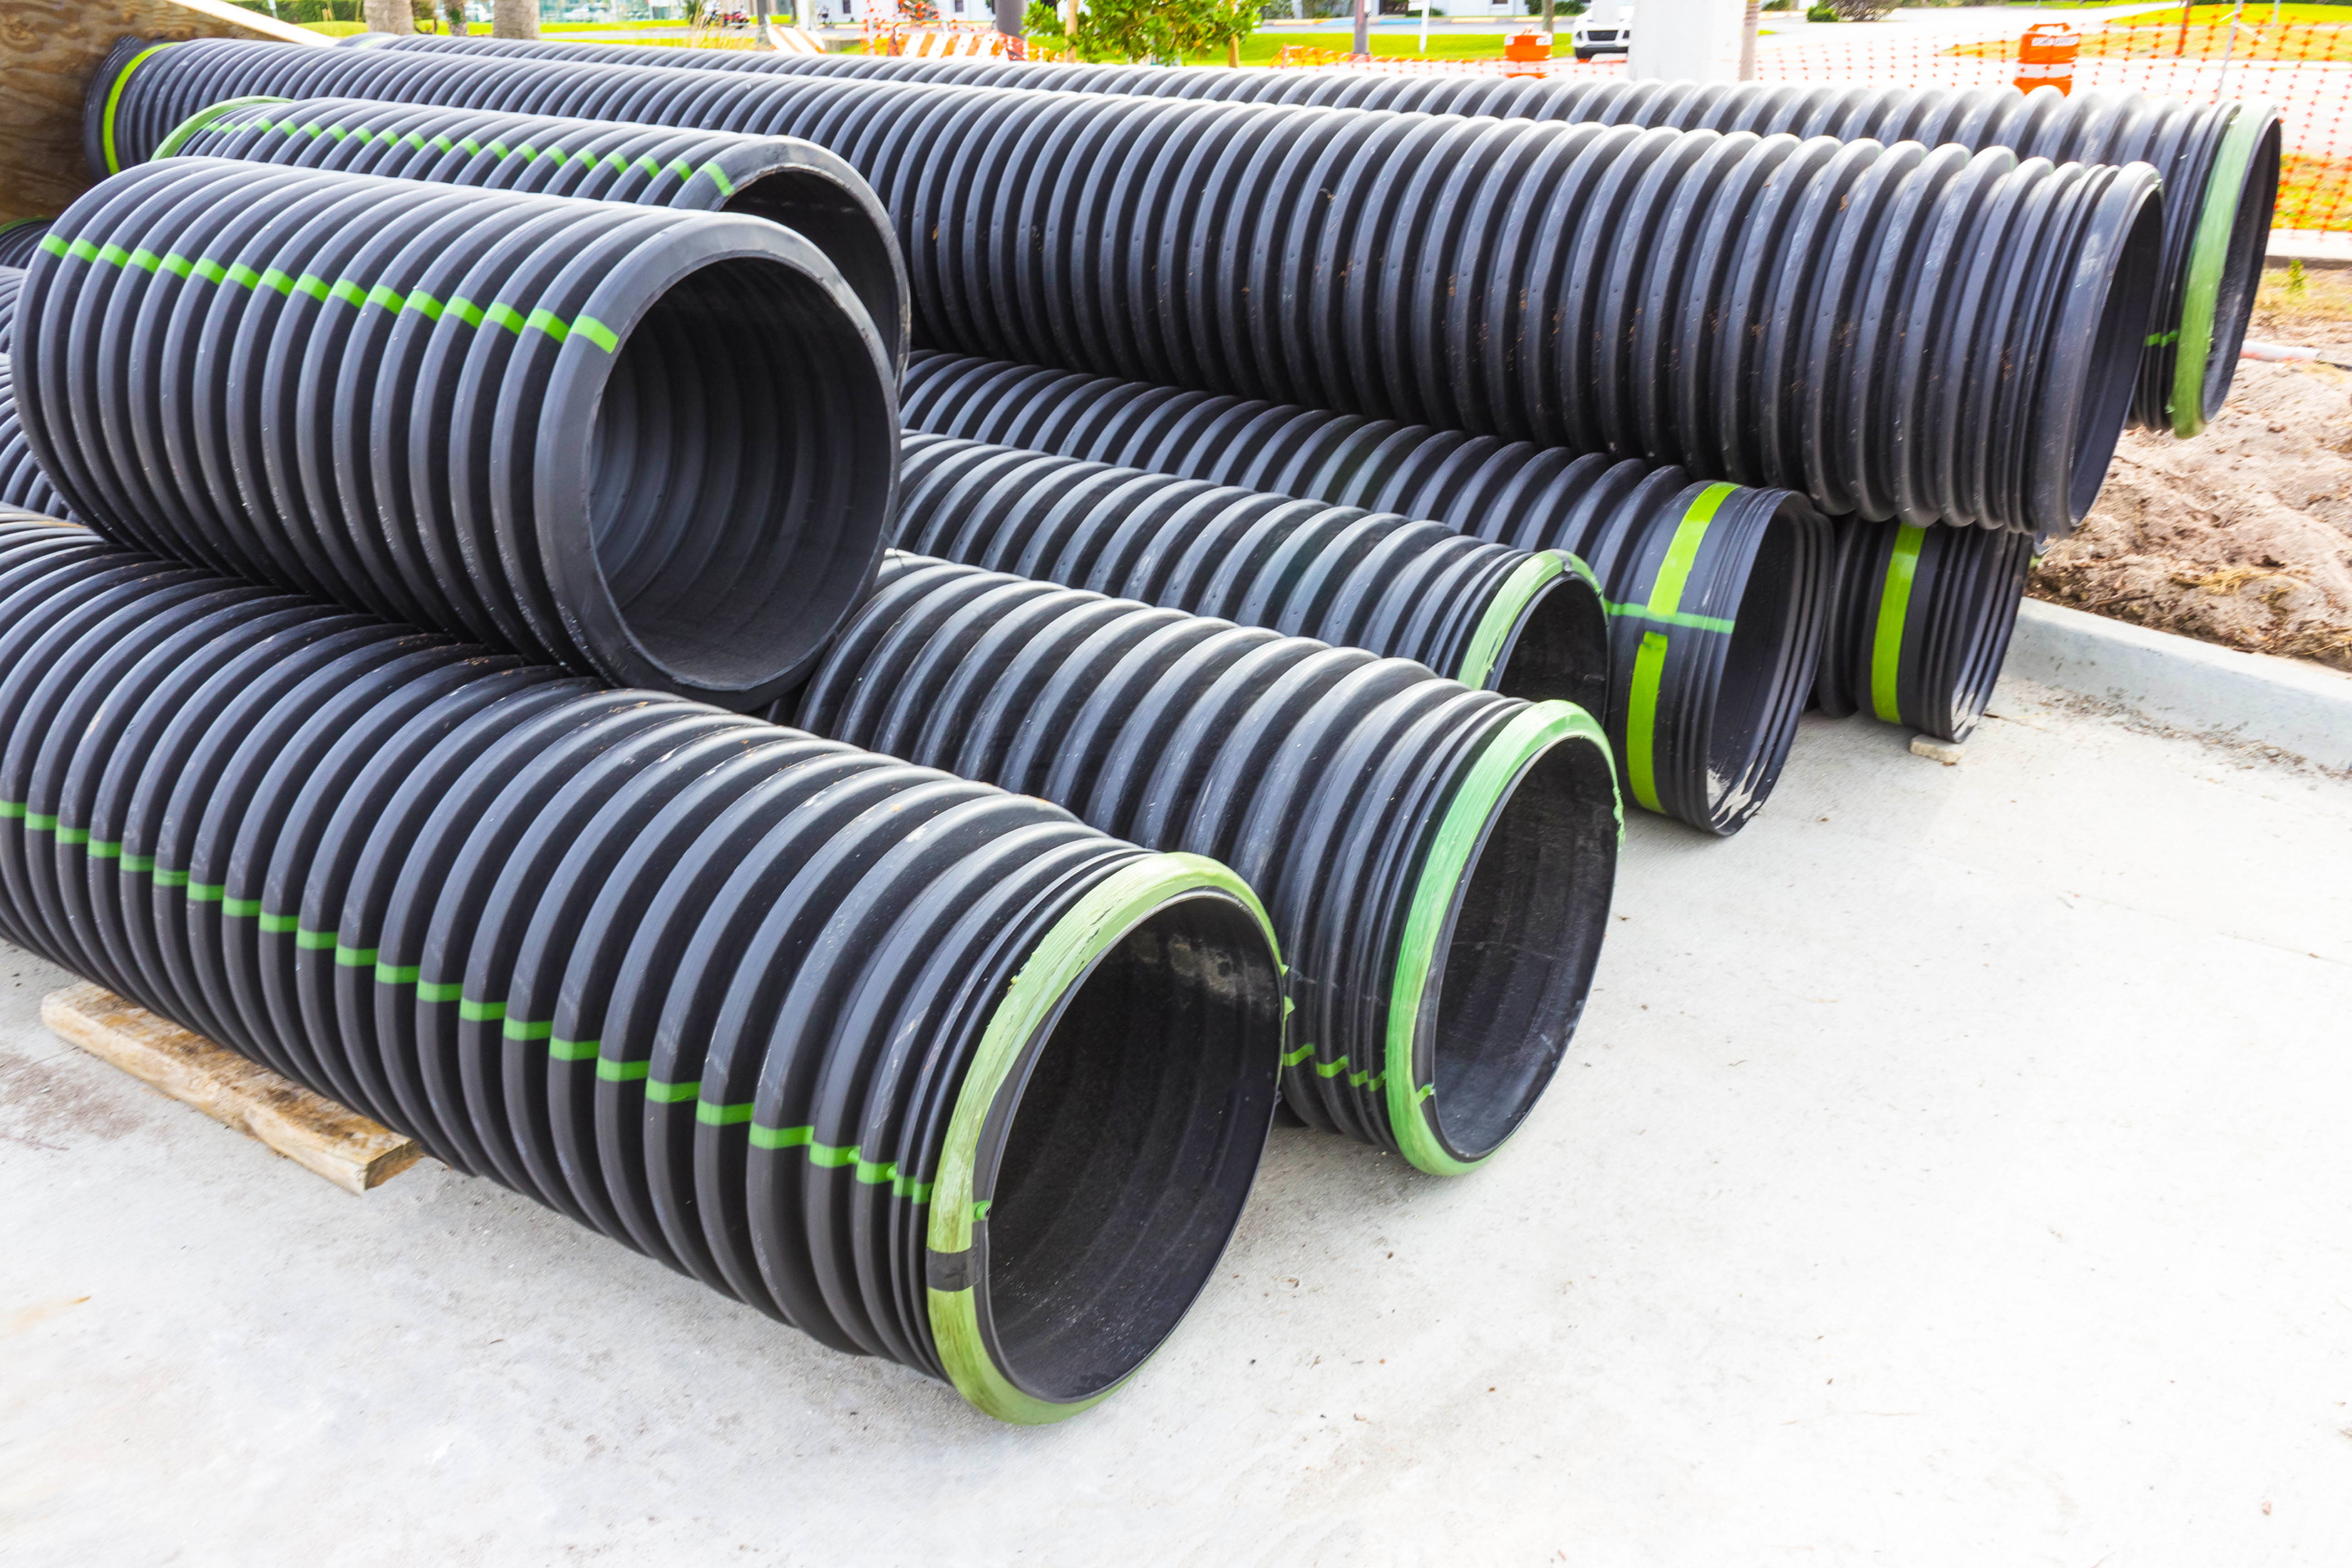 Pile of PVC pipe for manufacturing plant